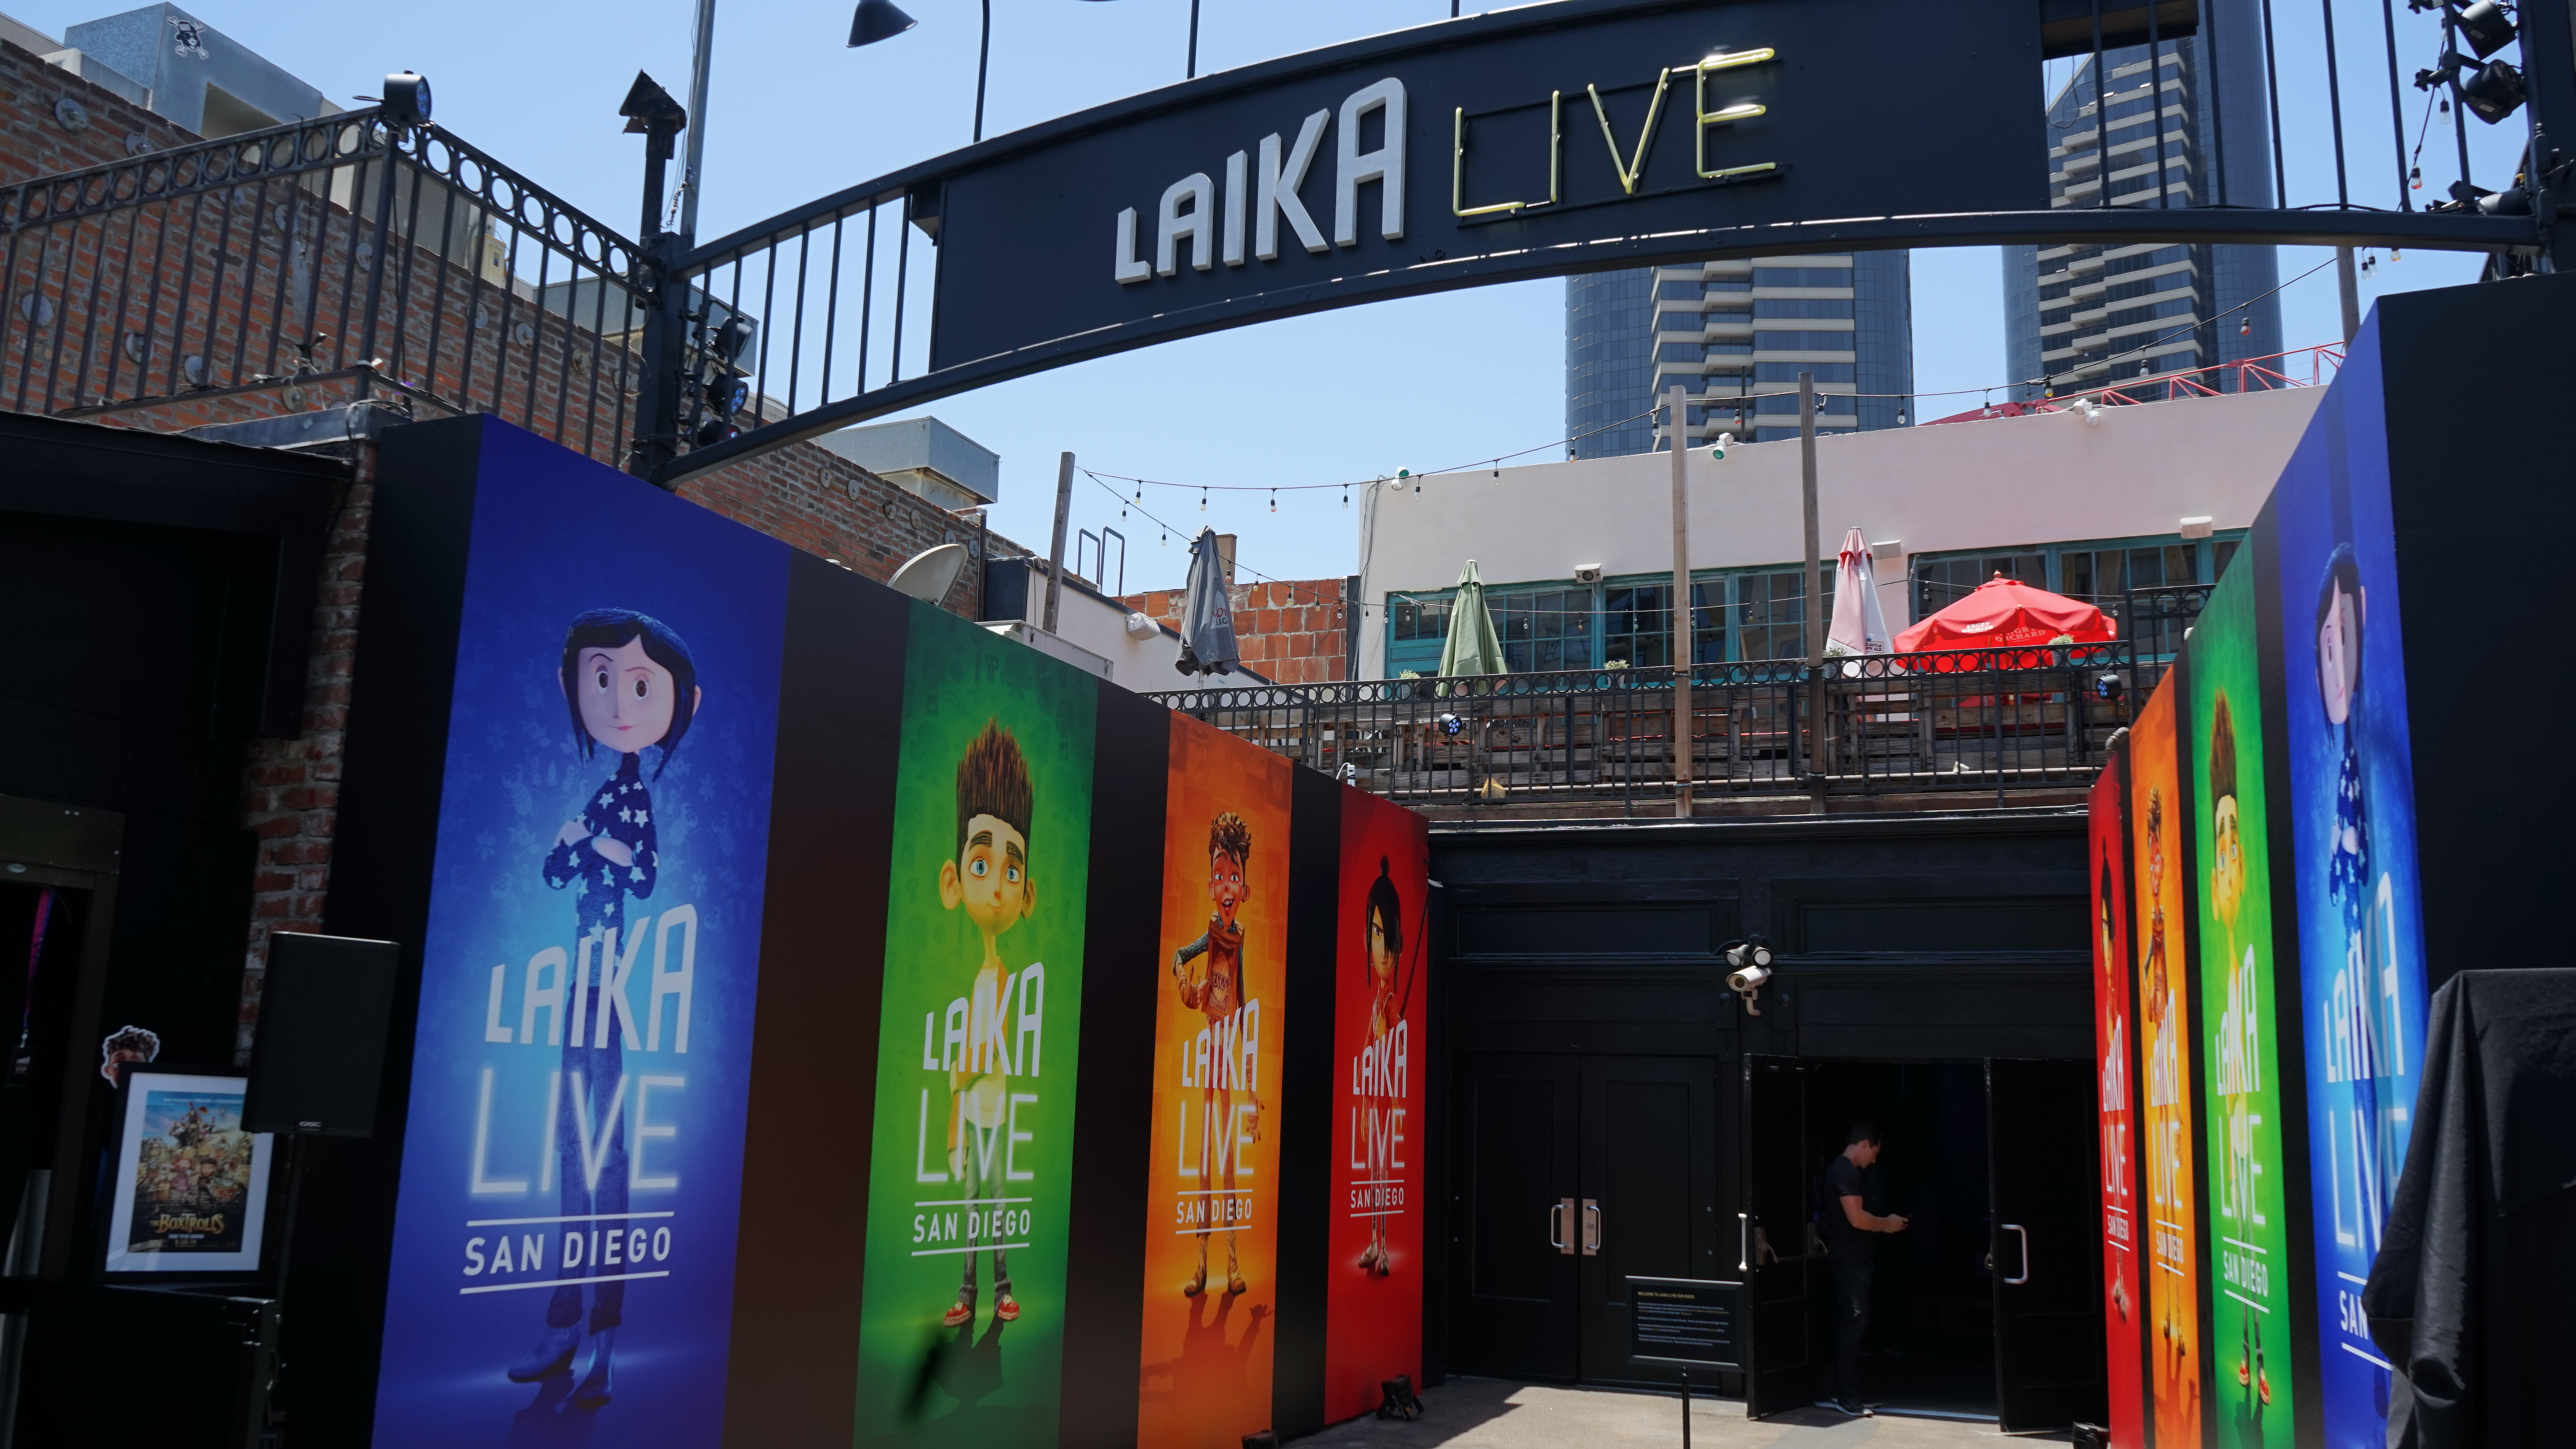 Enter The Laika Live Experience San Diego Comic Con Unofficial Blog